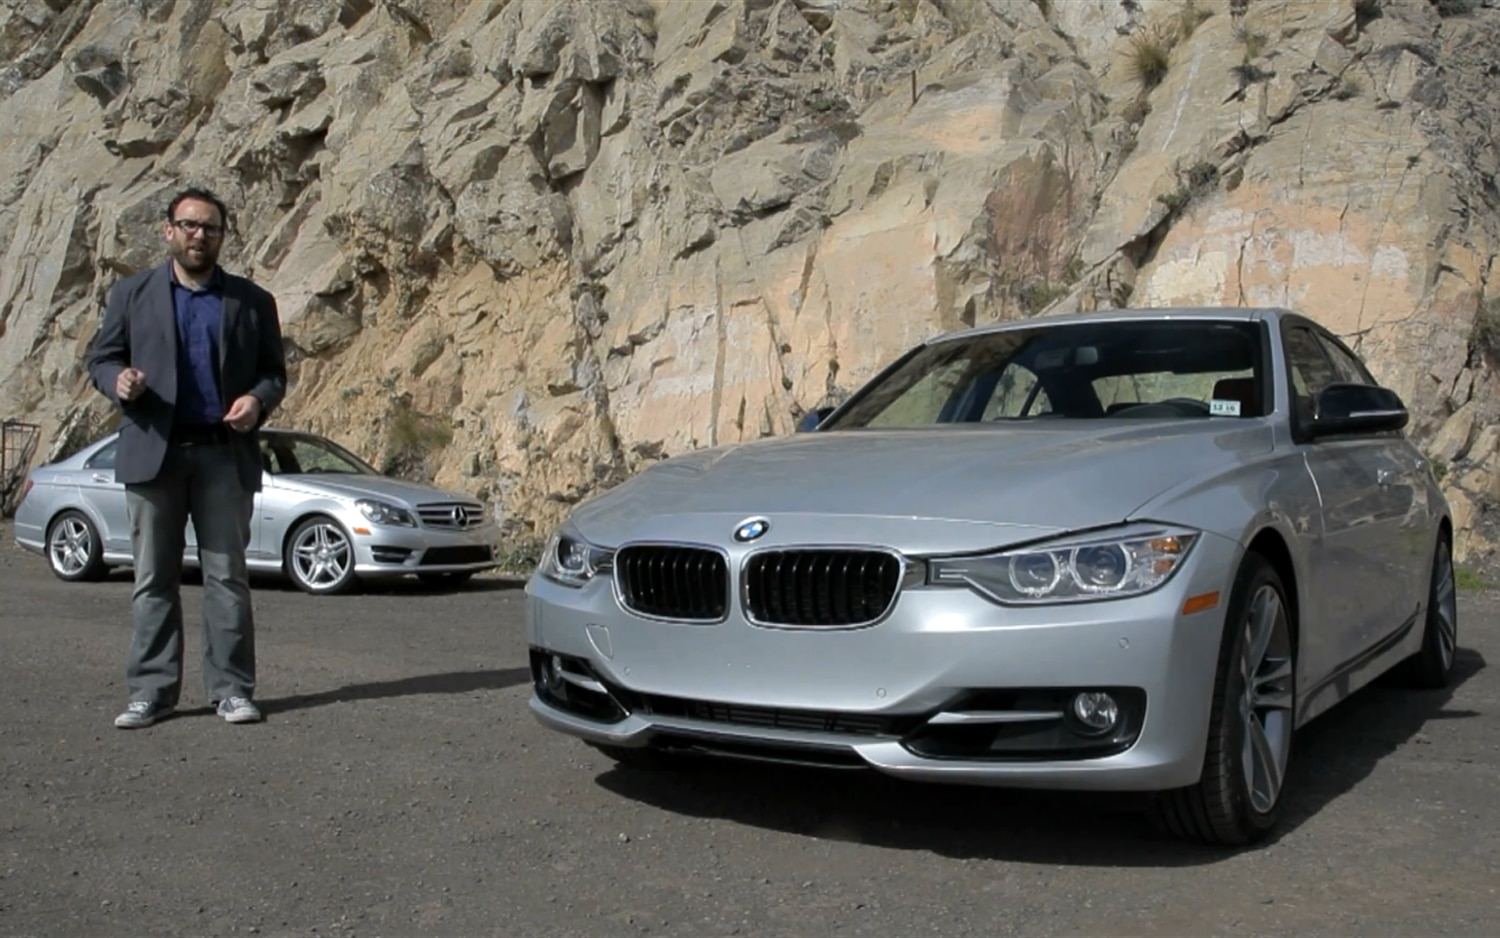 Jonny Lieberman With BMW 328i And Mercedes Benz C2501